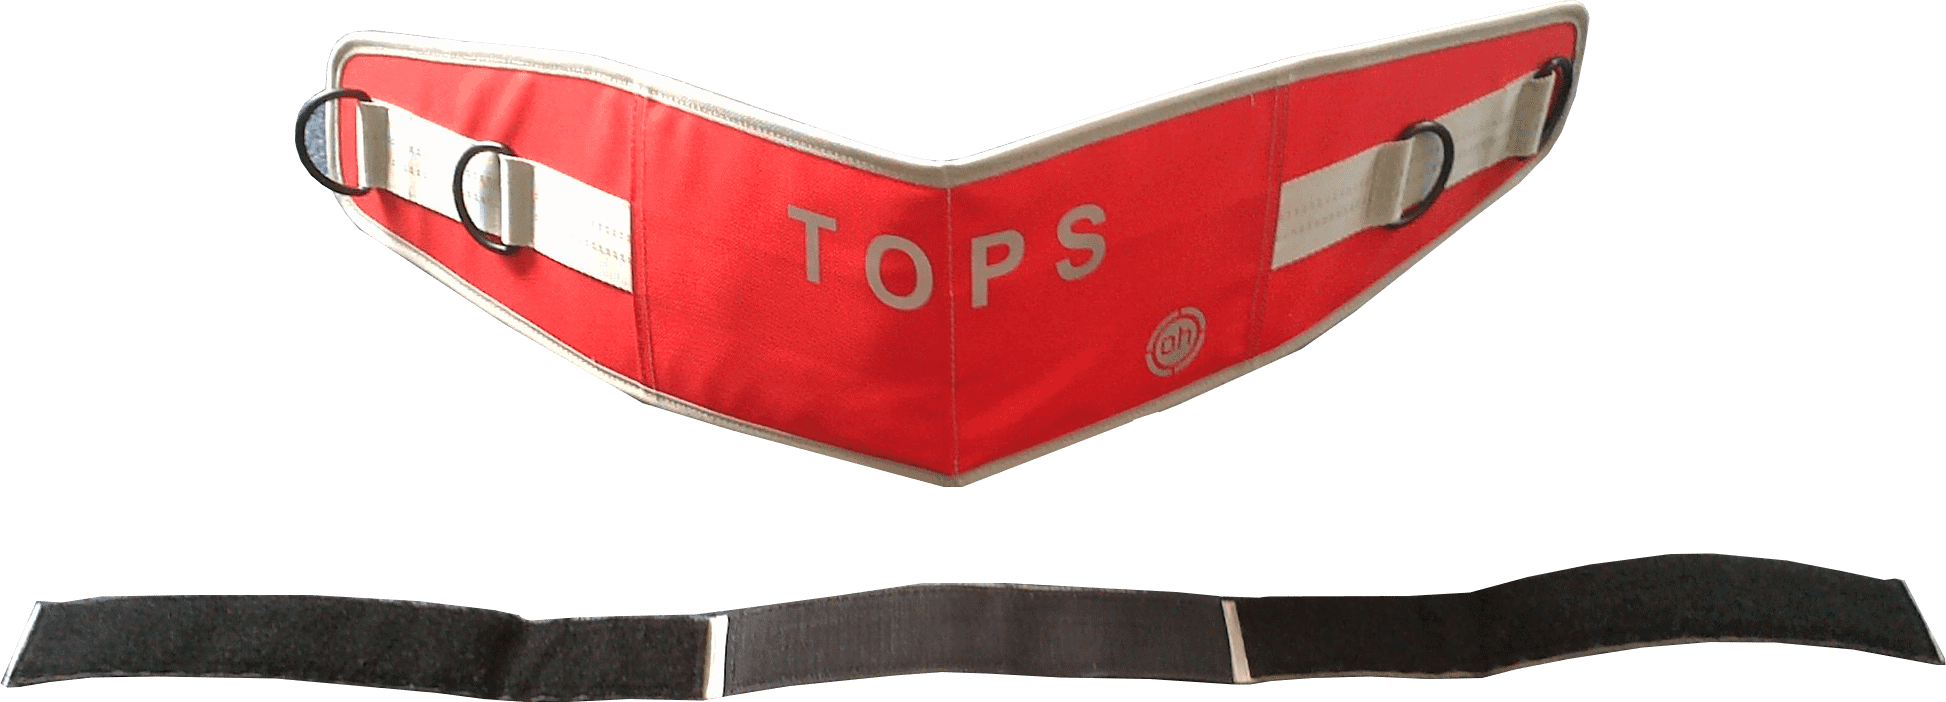 Tite Operational Pelvic Splint (TOPS)